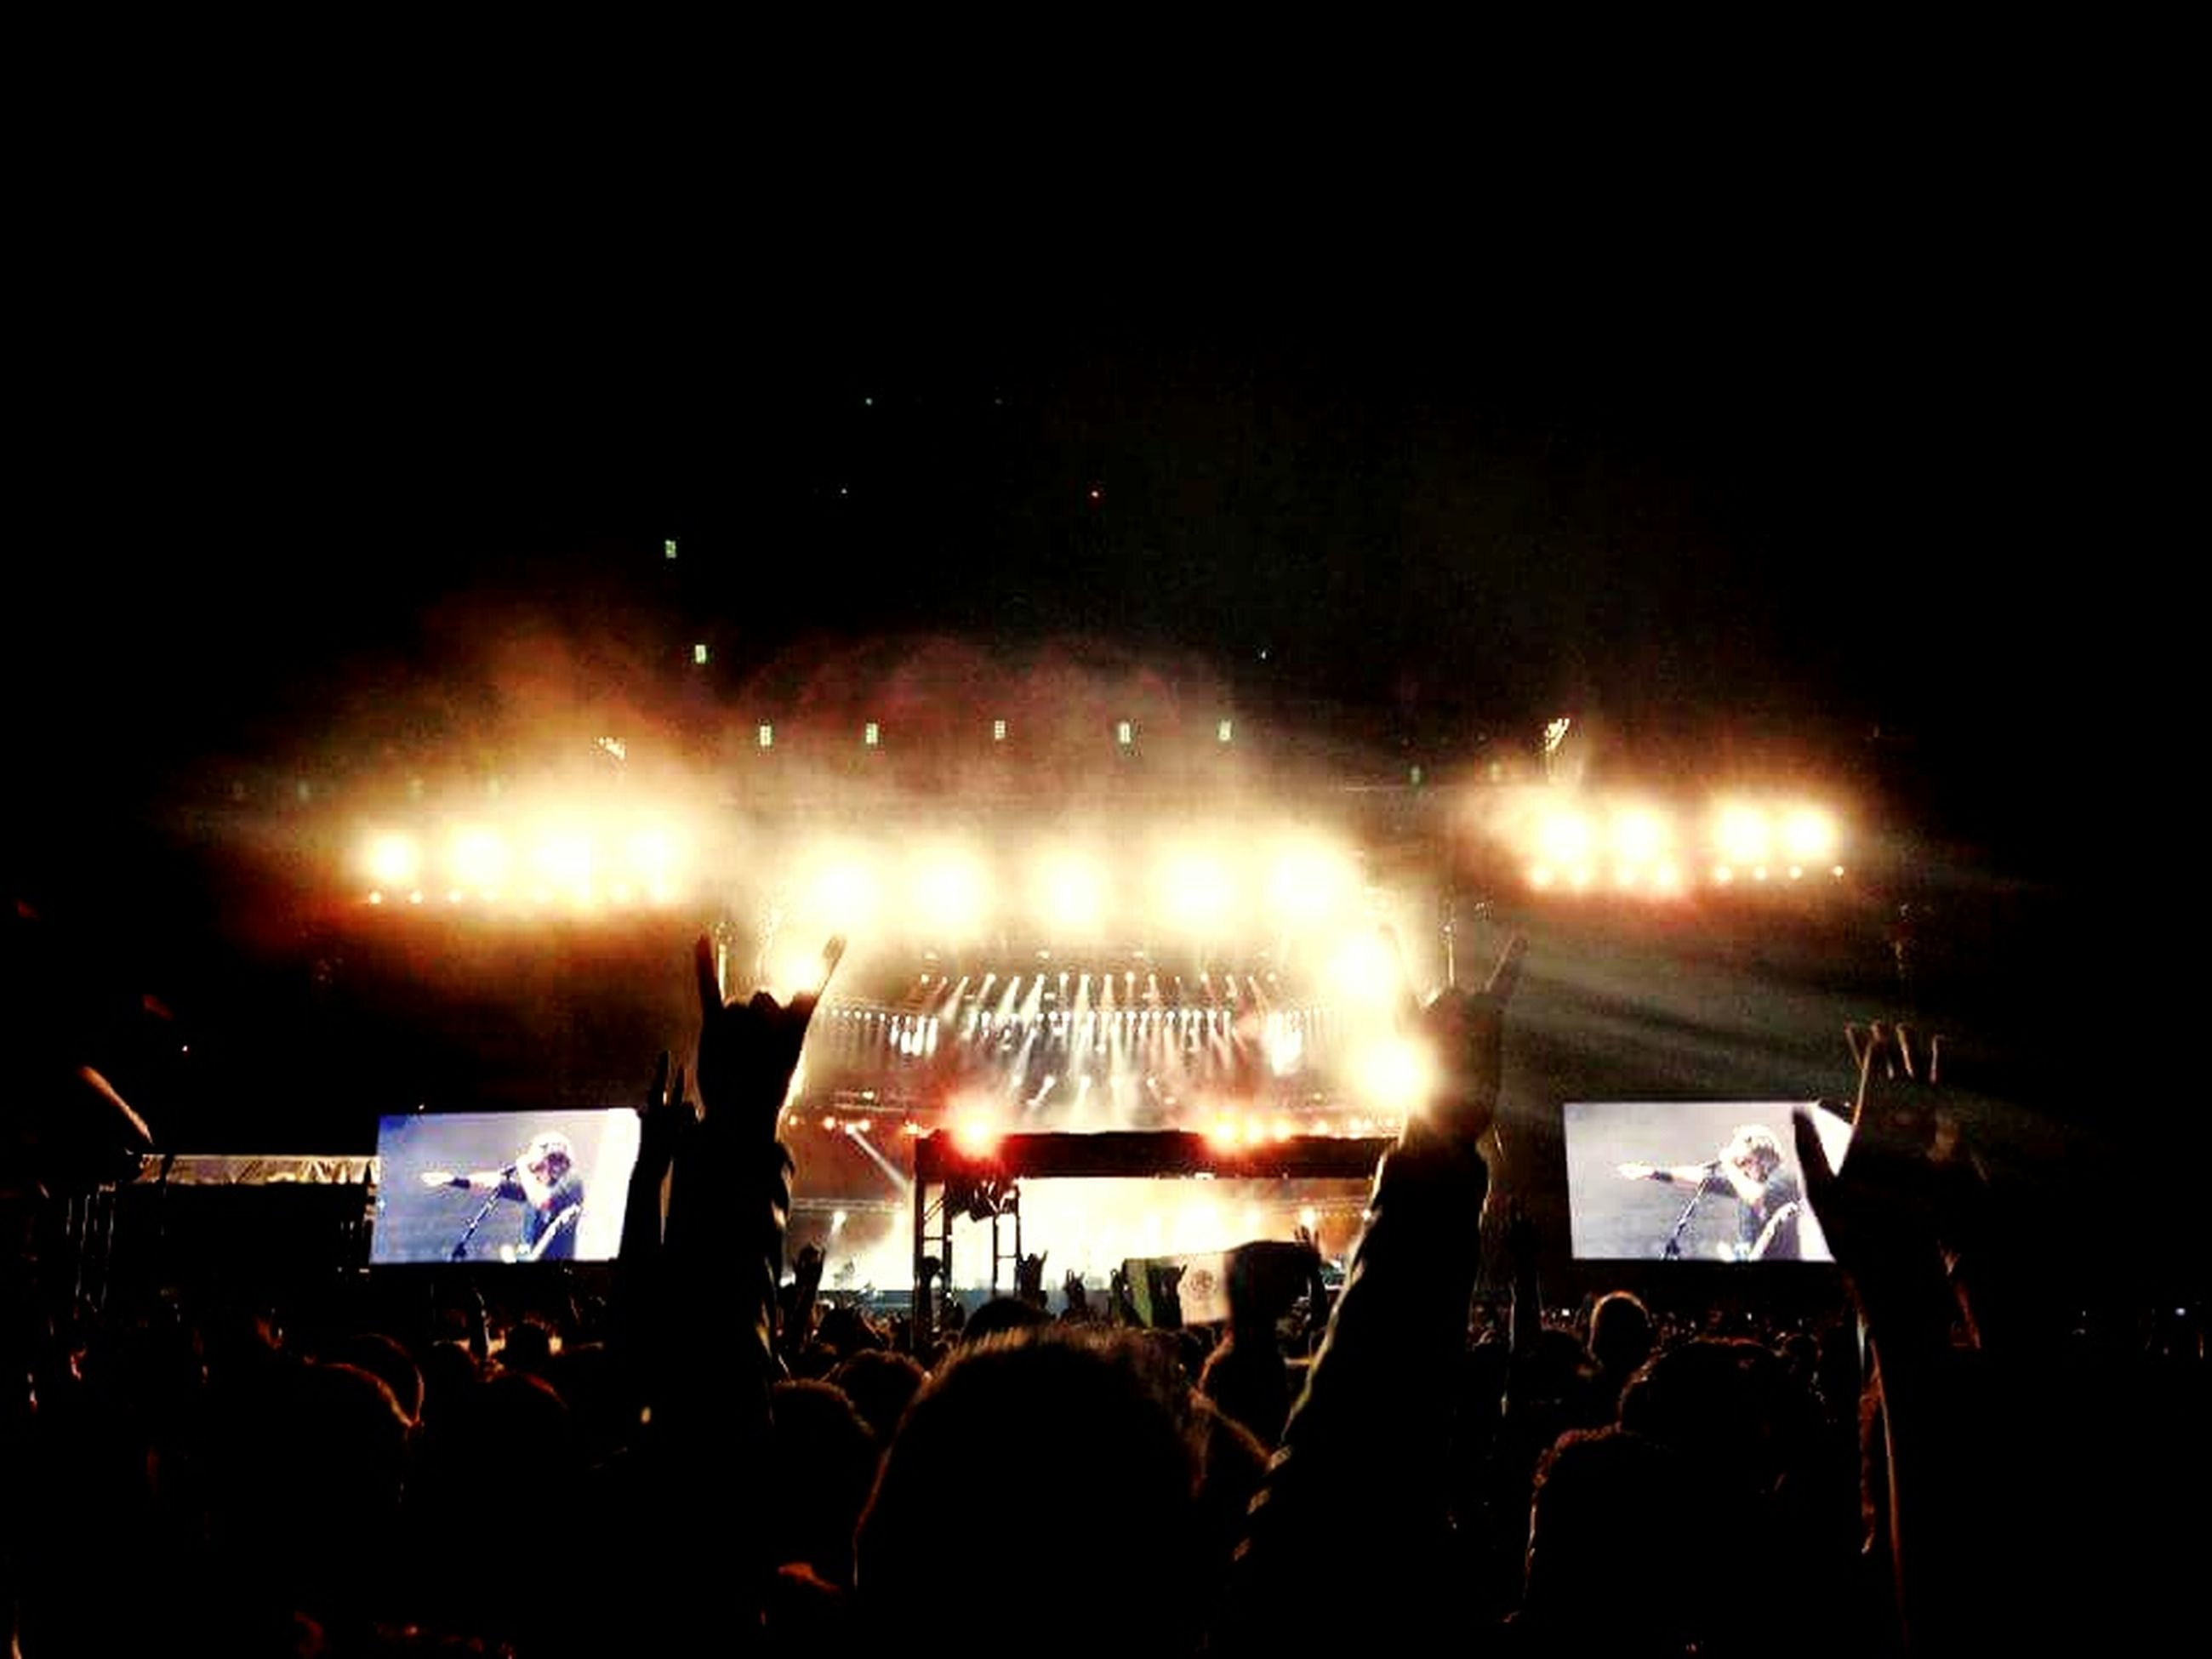 large group of people, illuminated, night, men, crowd, lifestyles, arts culture and entertainment, person, music, leisure activity, event, nightlife, performance, stage - performance space, enjoyment, music festival, lighting equipment, popular music concert